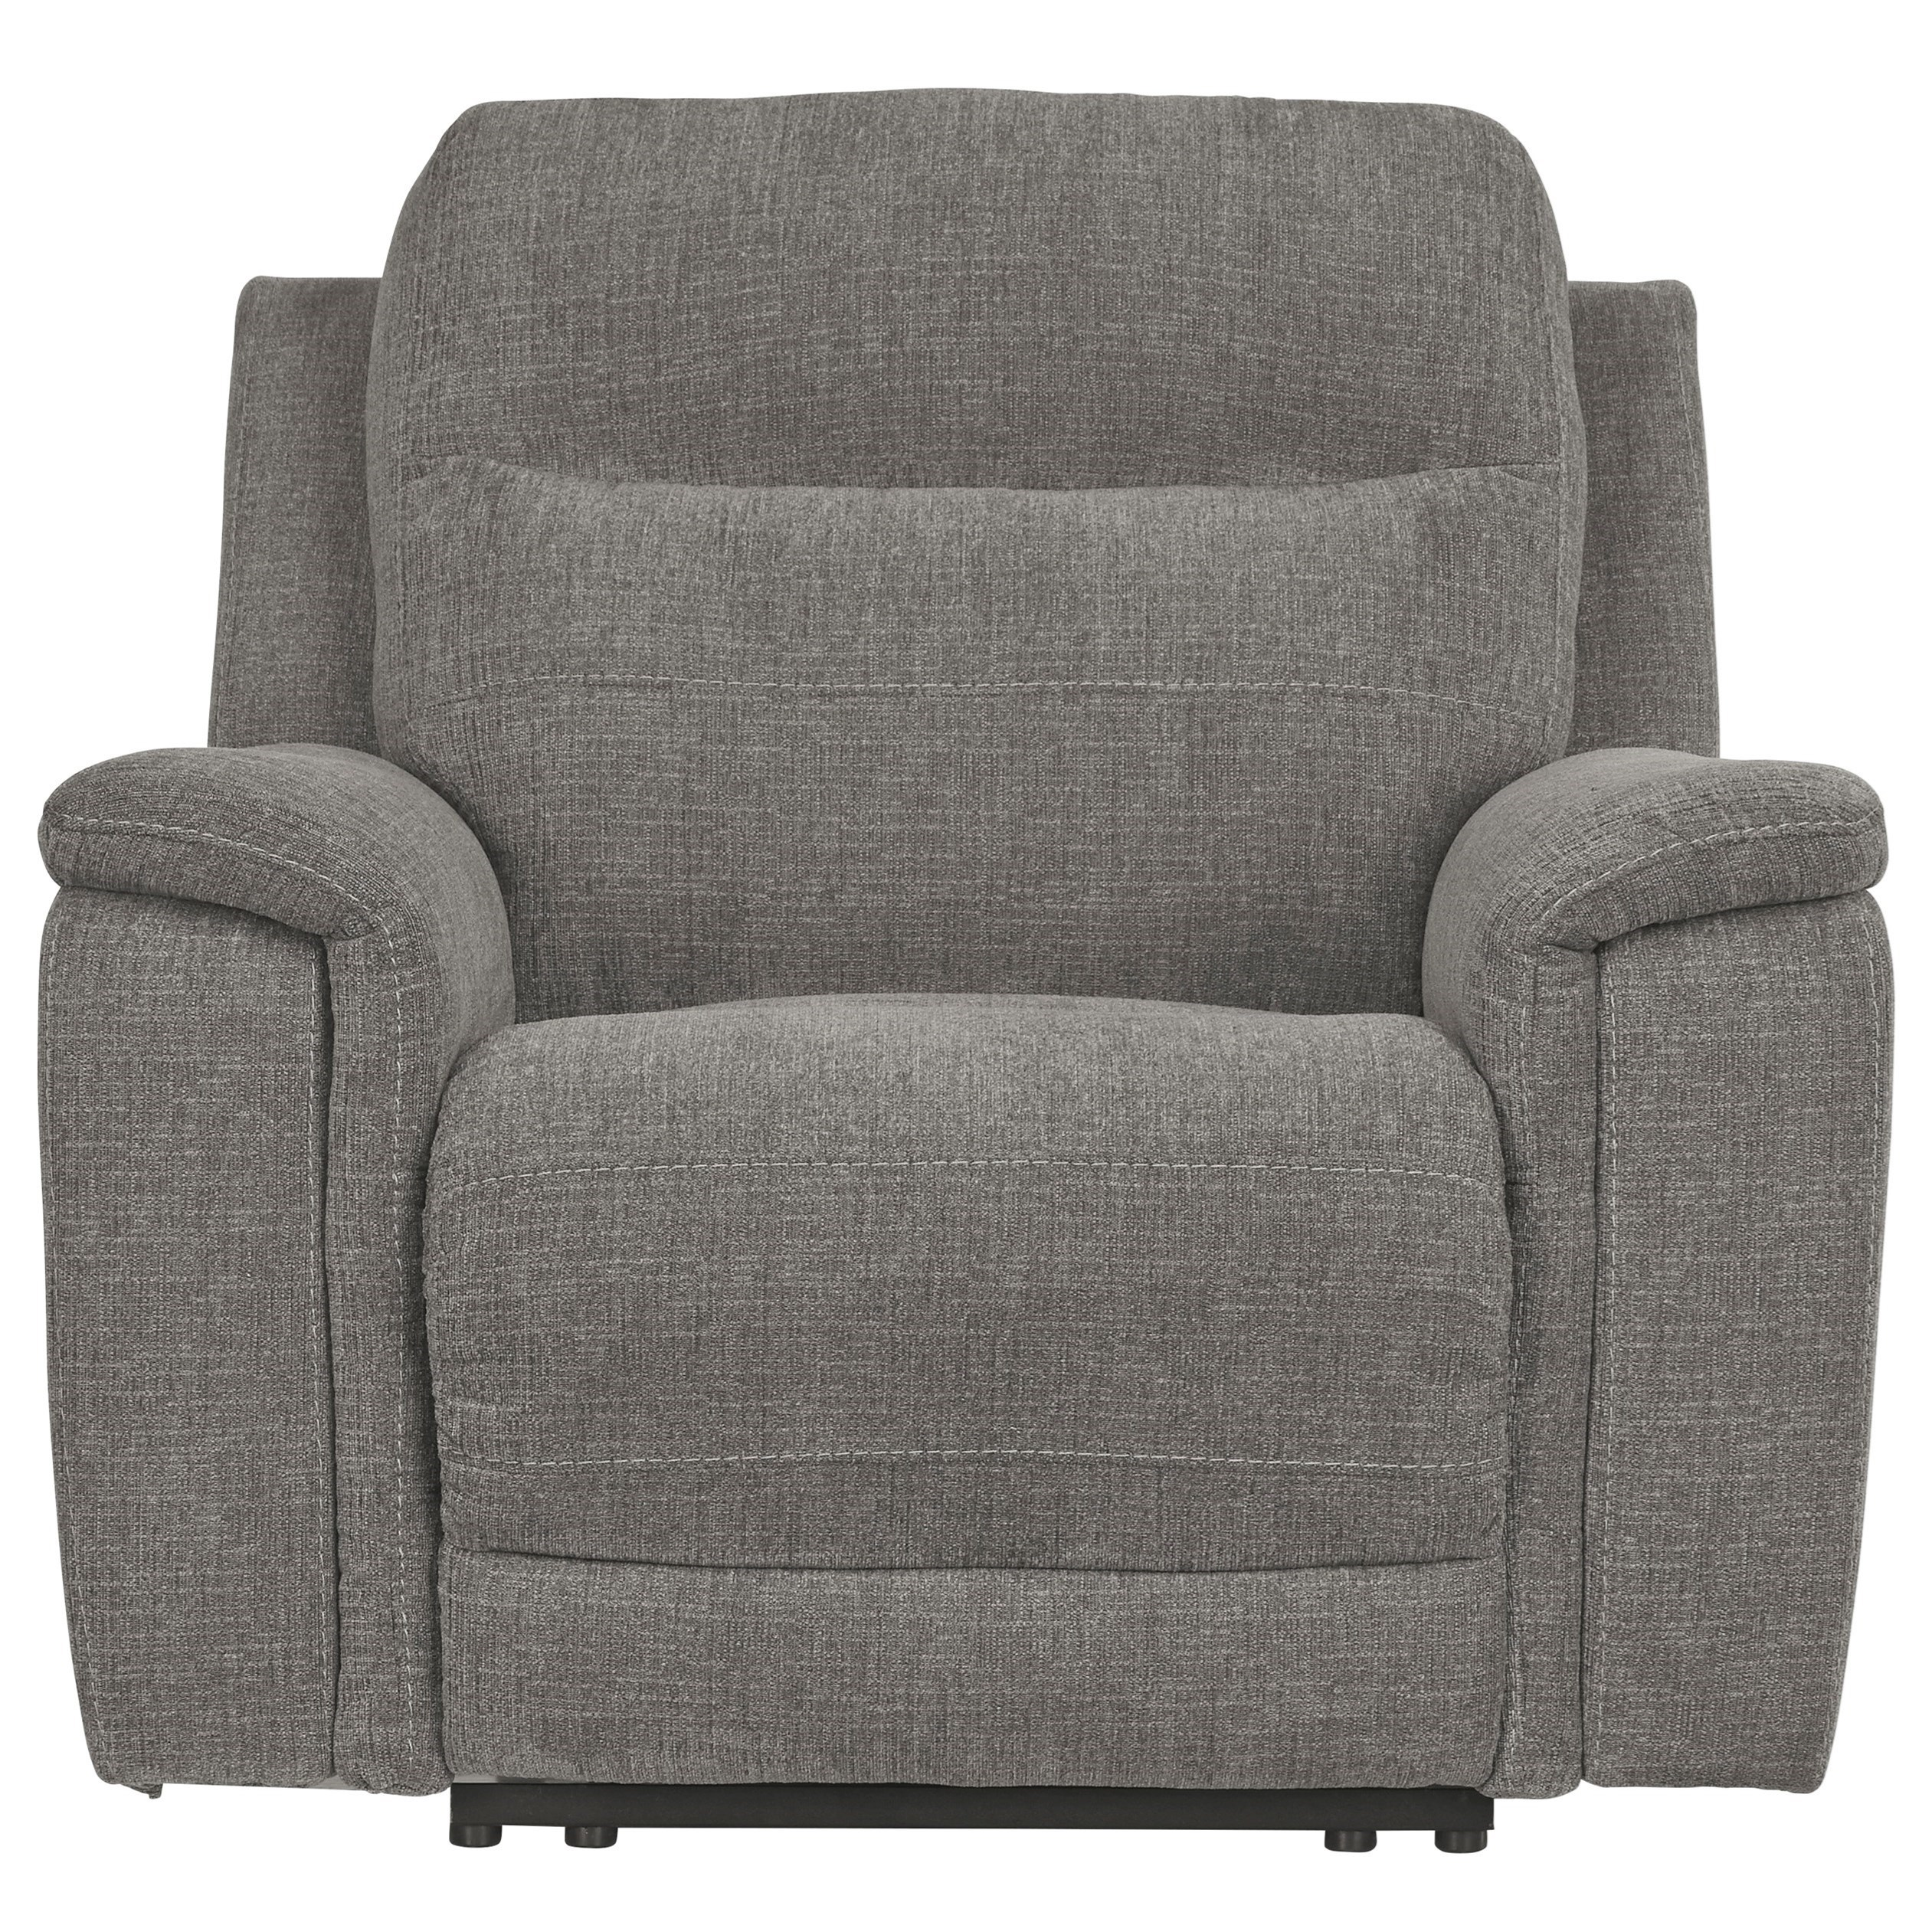 Mouttrie Power Recliner w/ Adjustable Headrest by Signature Design by Ashley at Factory Direct Furniture